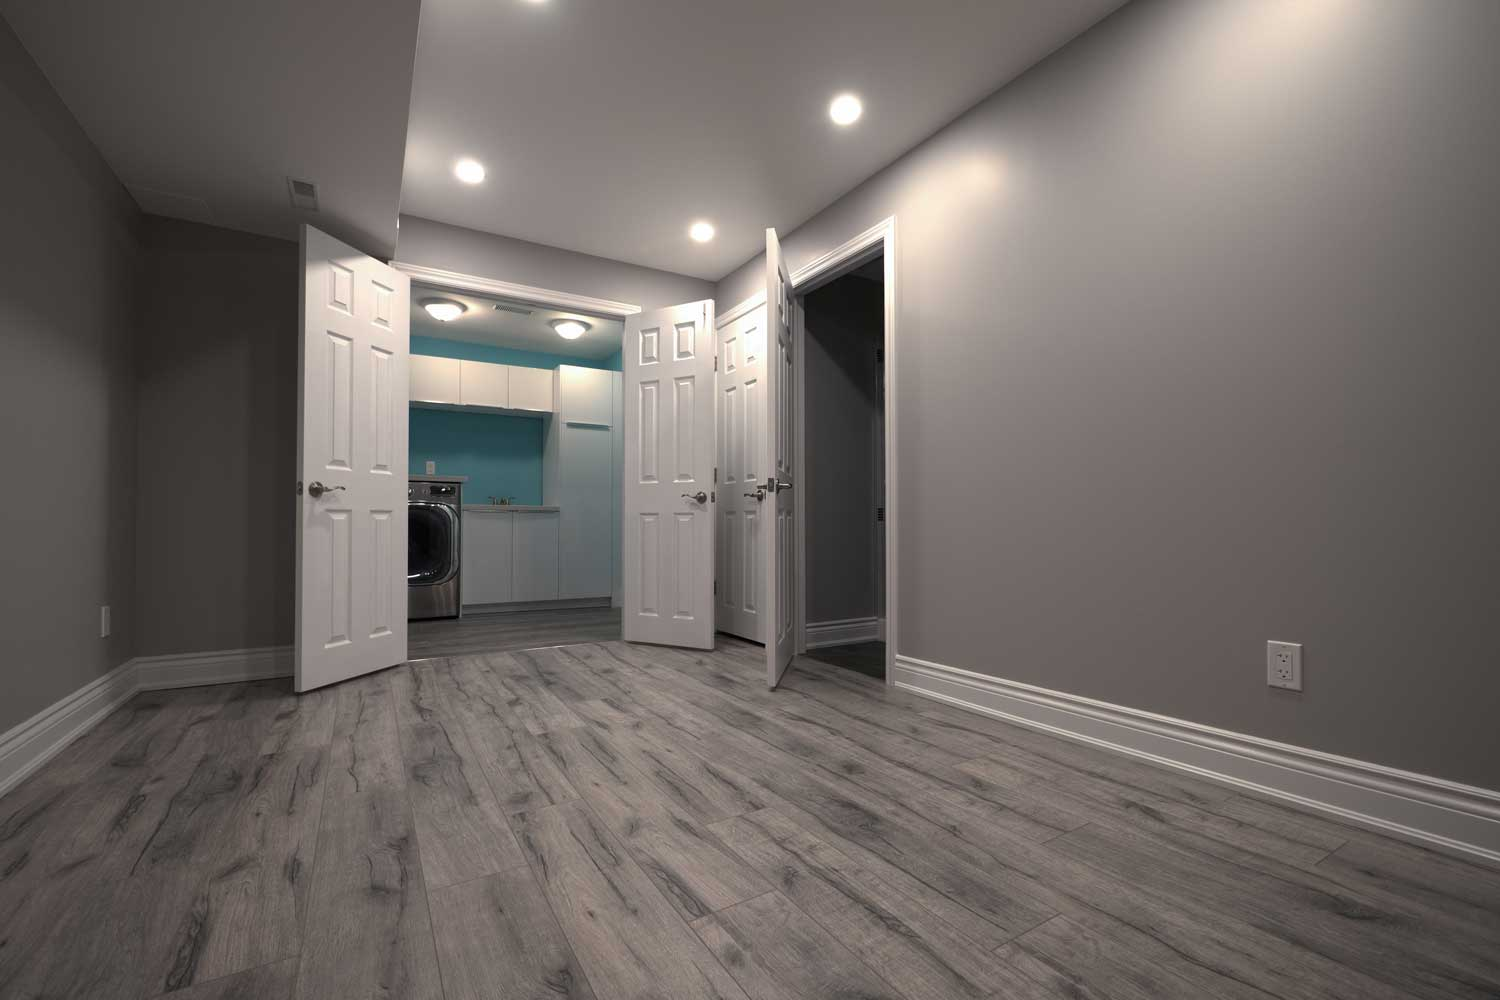 ccr-durham-basement-renovations-custom-built-richard-stephanie-20